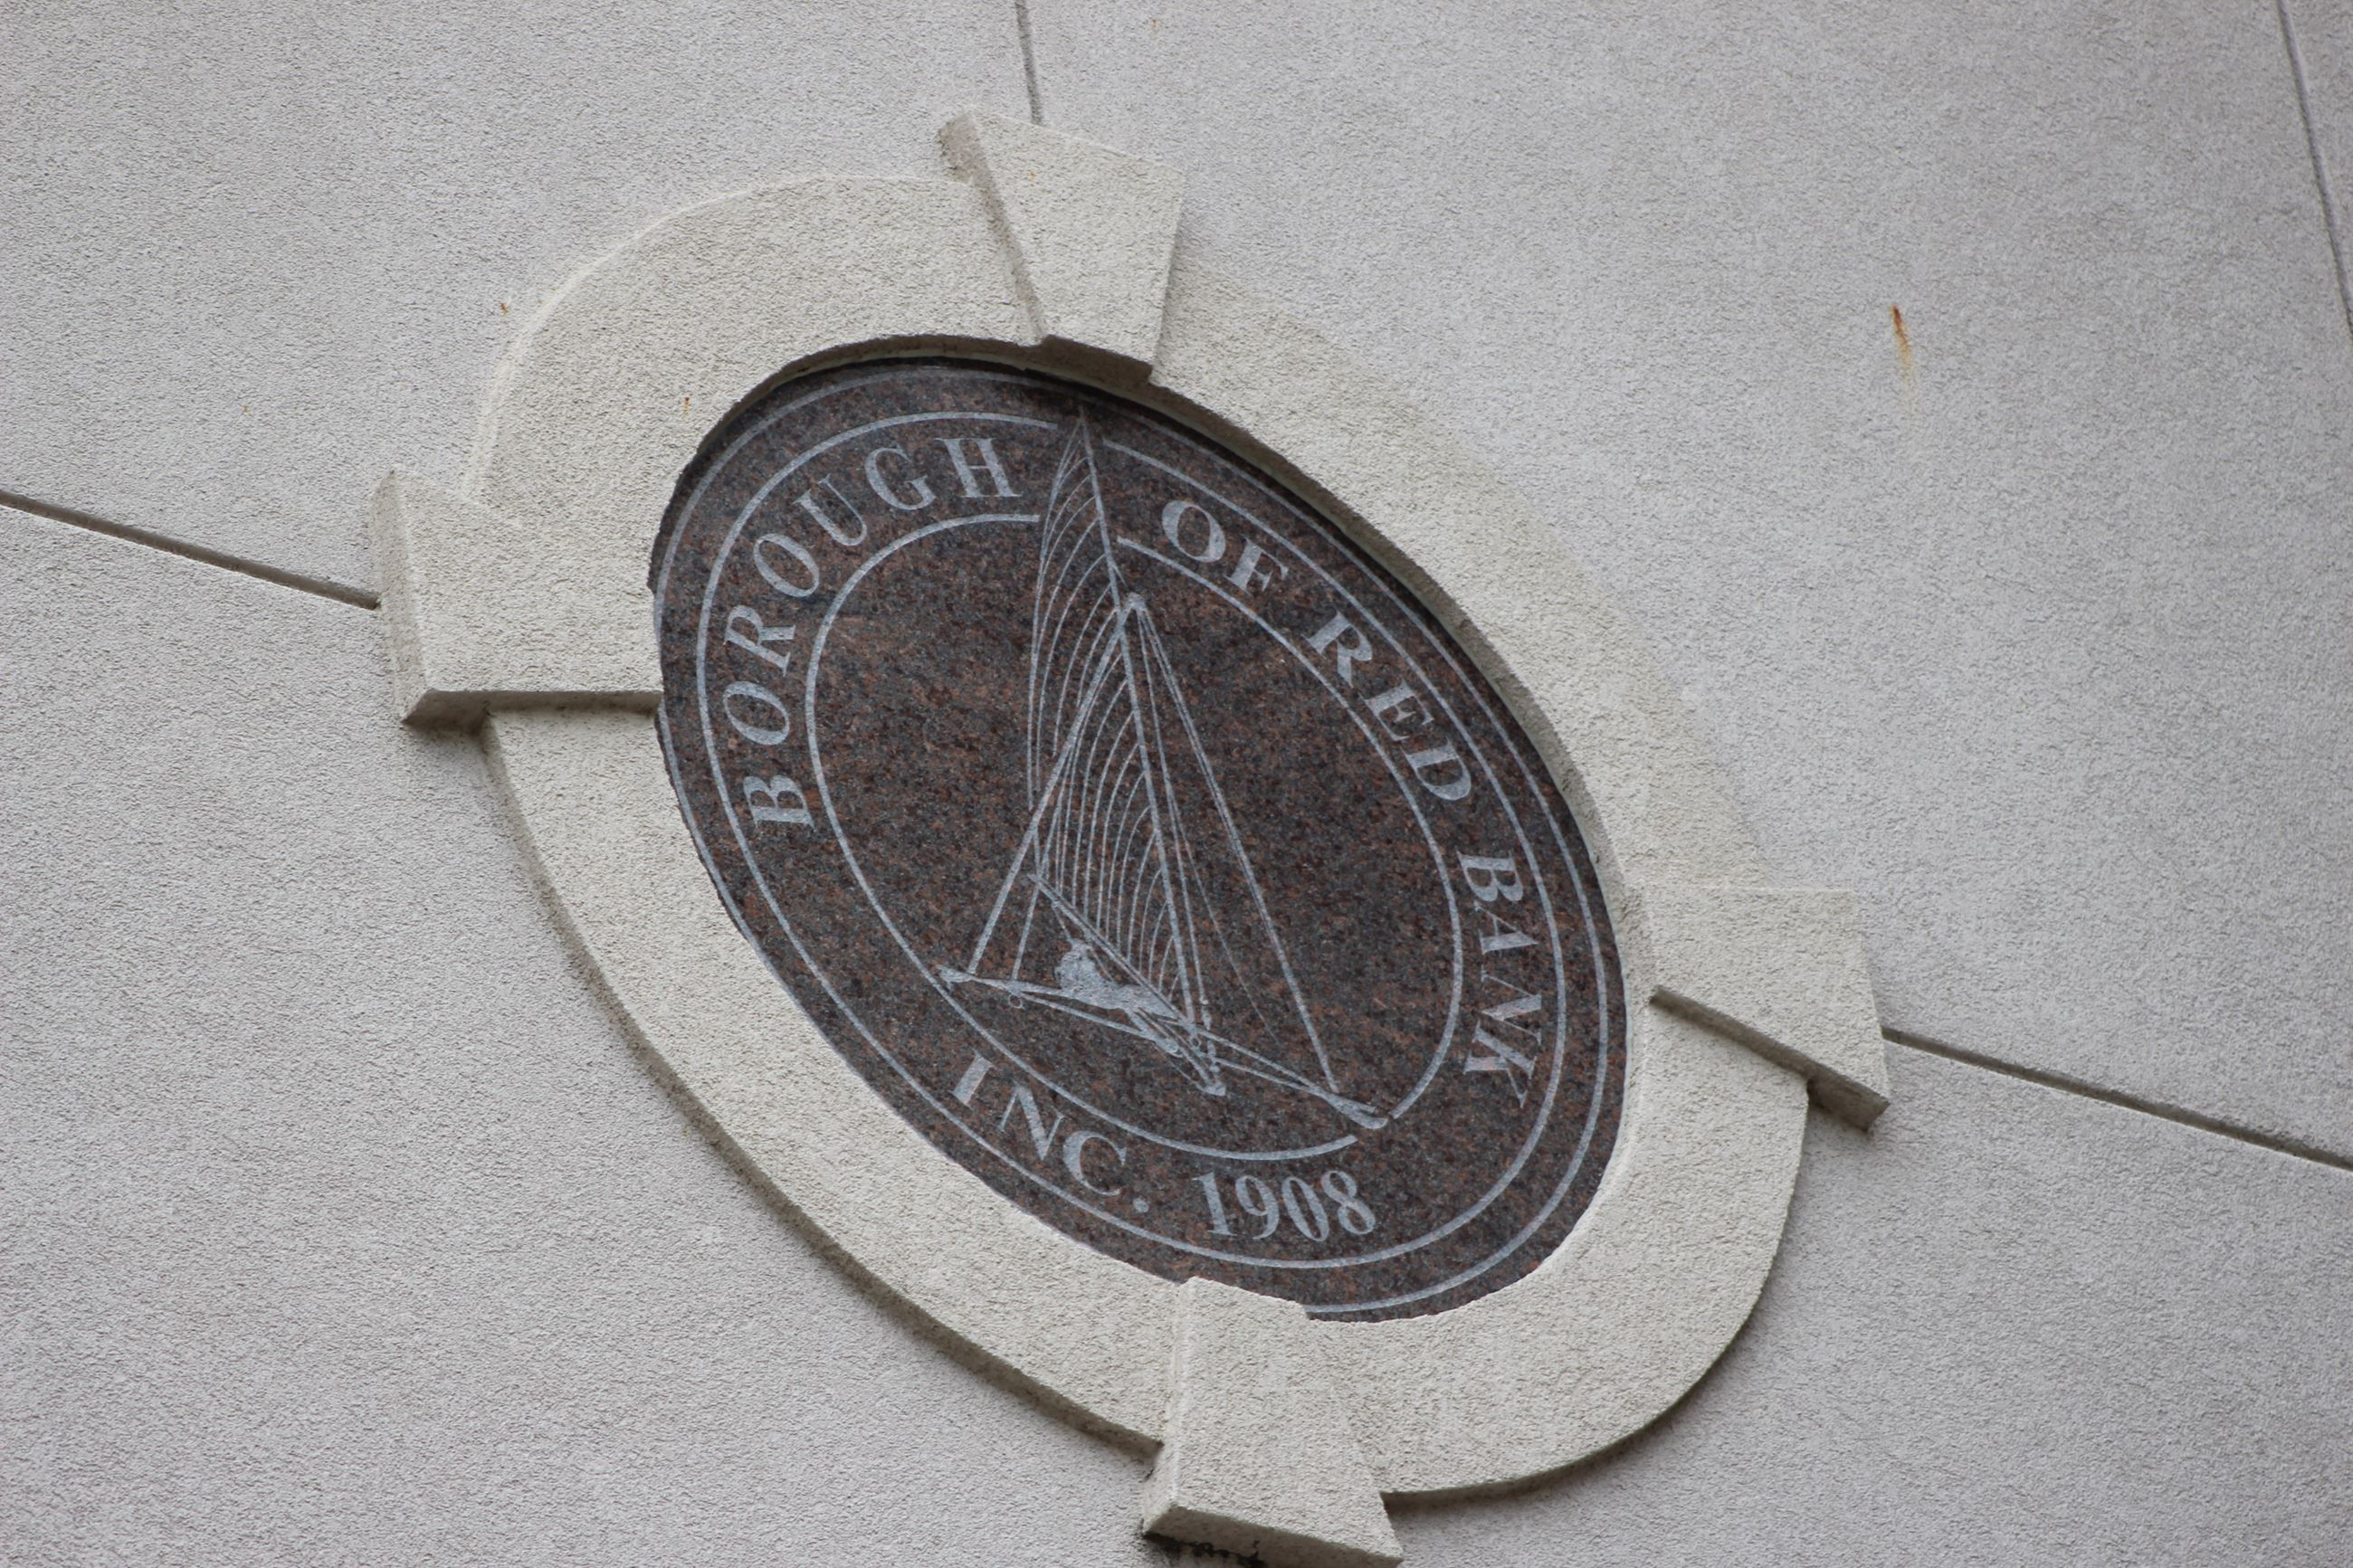 Borough Hall Emblem